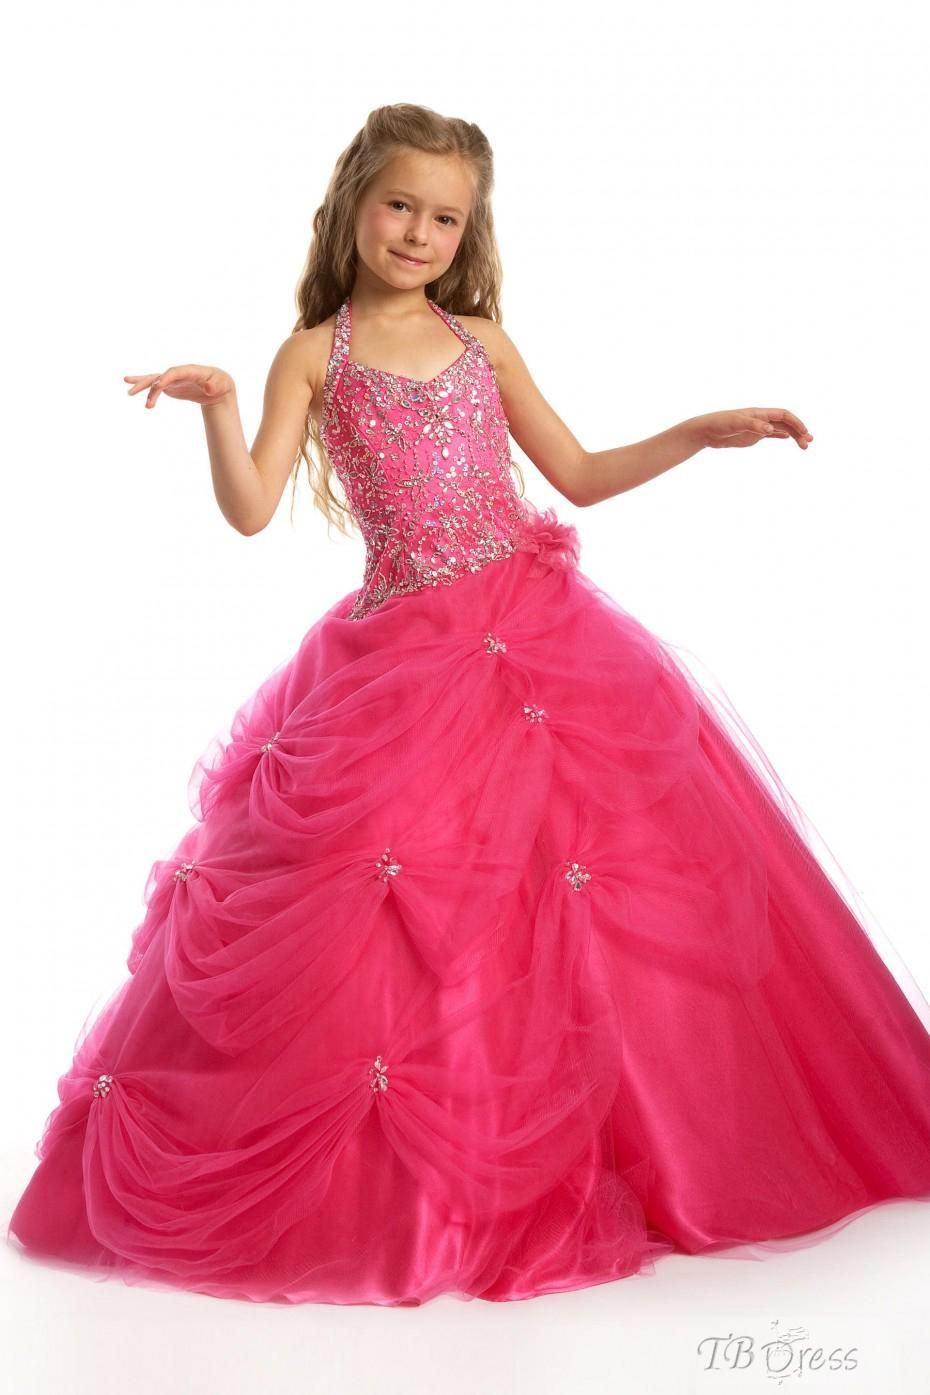 red kids dresses for 9 year olds | My Wishlist | Dresses ...